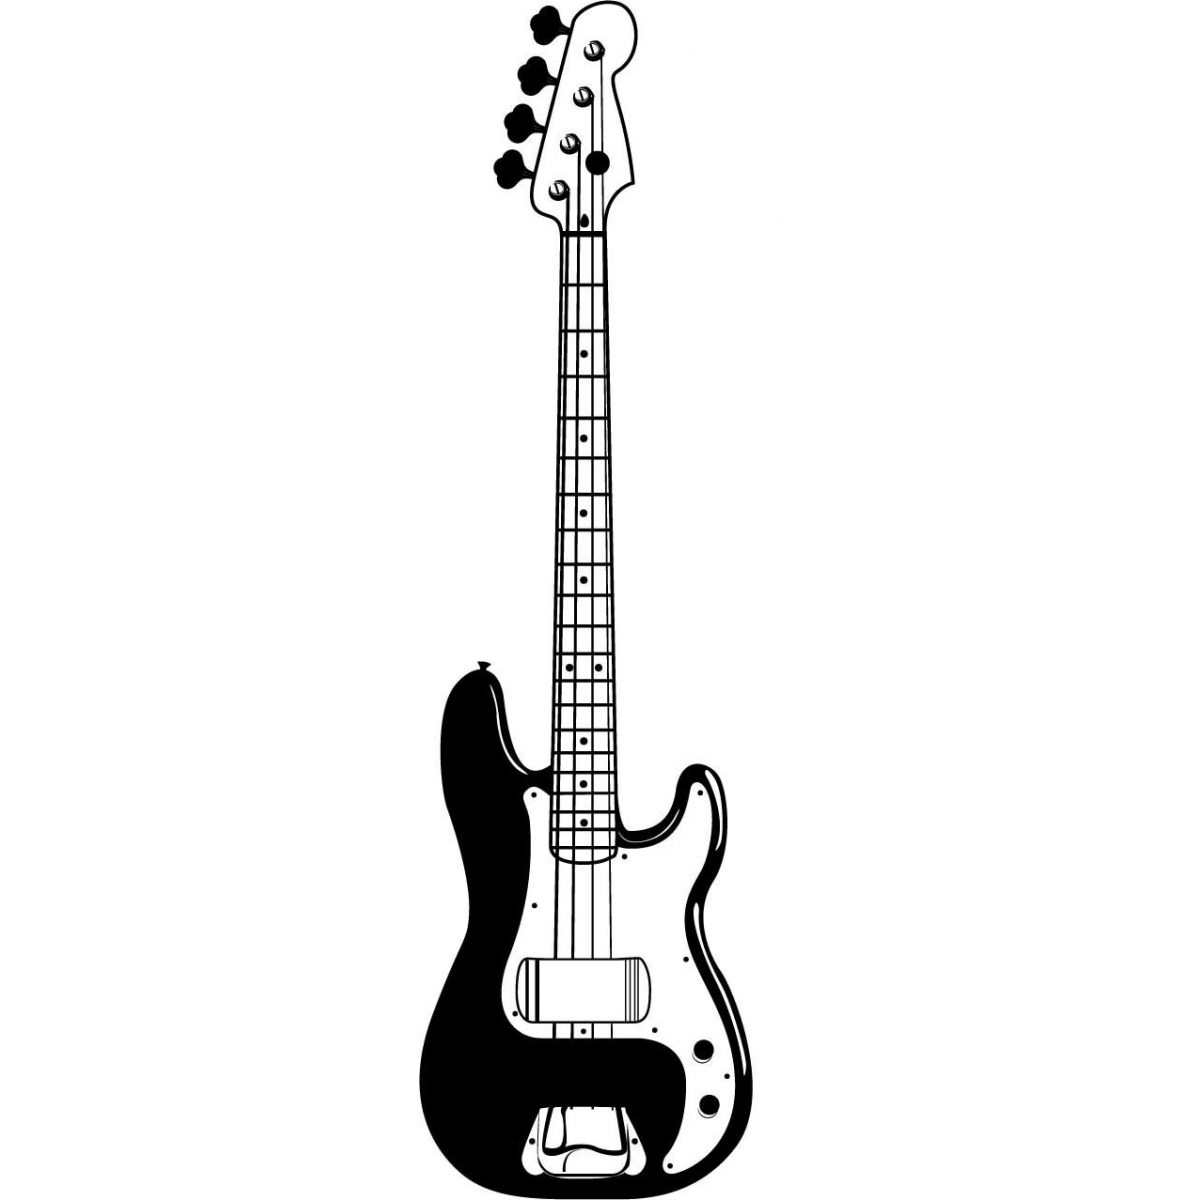 Rock Guitar Clipart | Free download on ClipArtMag